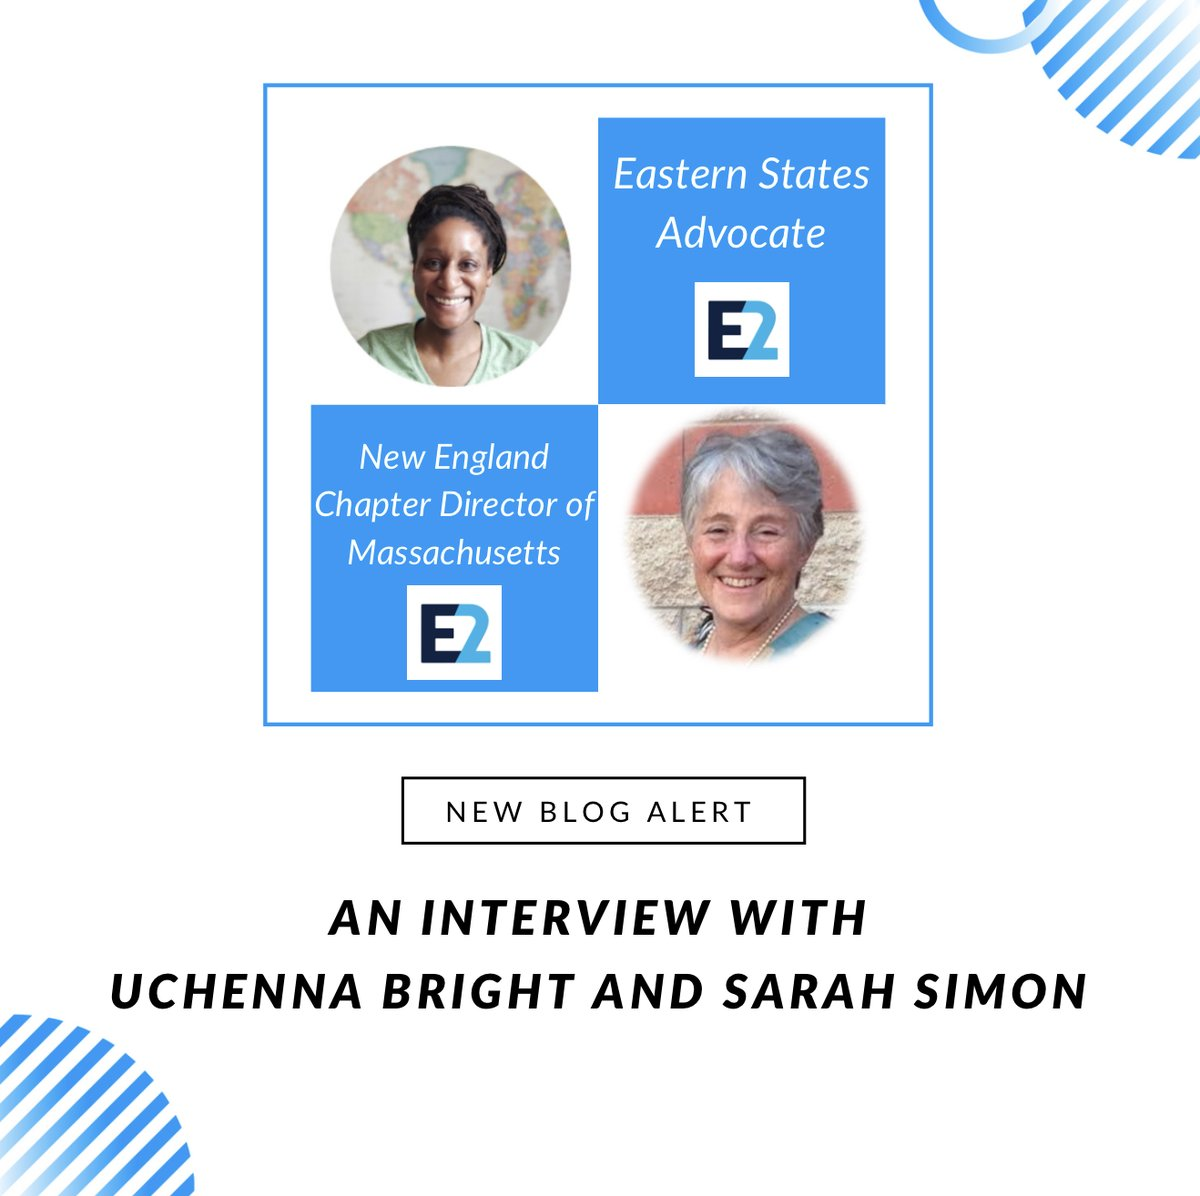 If you didn't catch it on Wednesday, Parkaze's own @SnarkyKarachite  interviewed Uchenna Bright and Sarah Simon from E2 on COVID-19 and sustainability. Link in bio!  #interview #E2 #parkaze #cleanenergy #sustainable